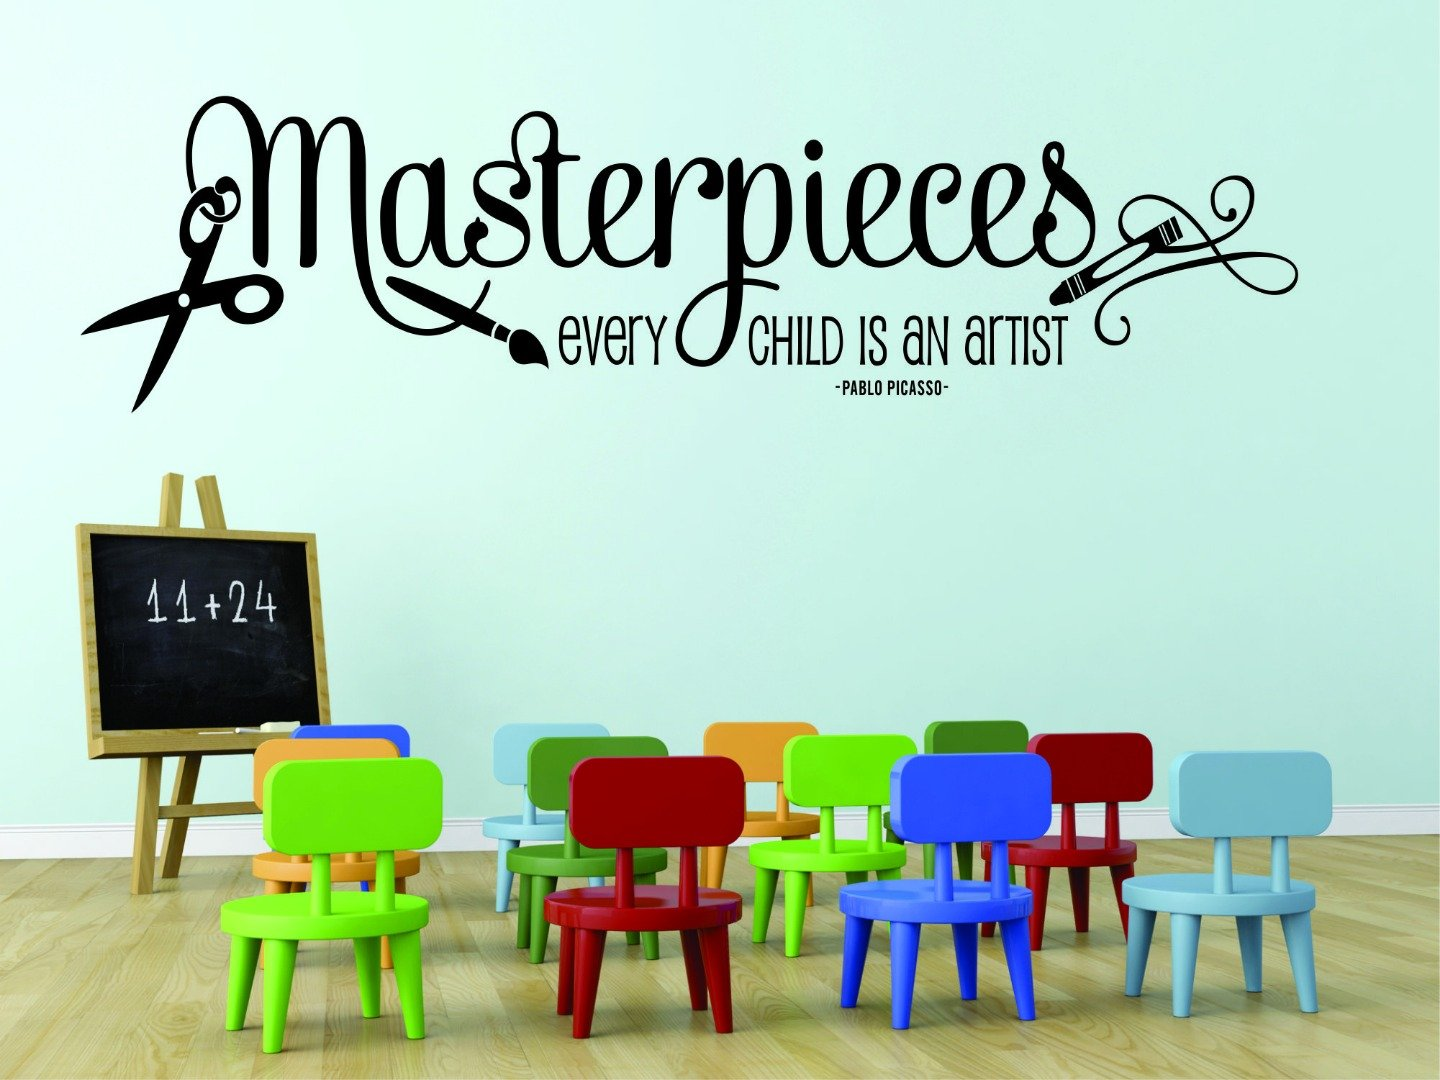 Design with Vinyl RAD 758 1 Masterpieces. Every Child Is An Artist. Pablo Picasso Quote Art Classroom Paint Brush Wall Decal, Black, 12 x 18' 12 x 18